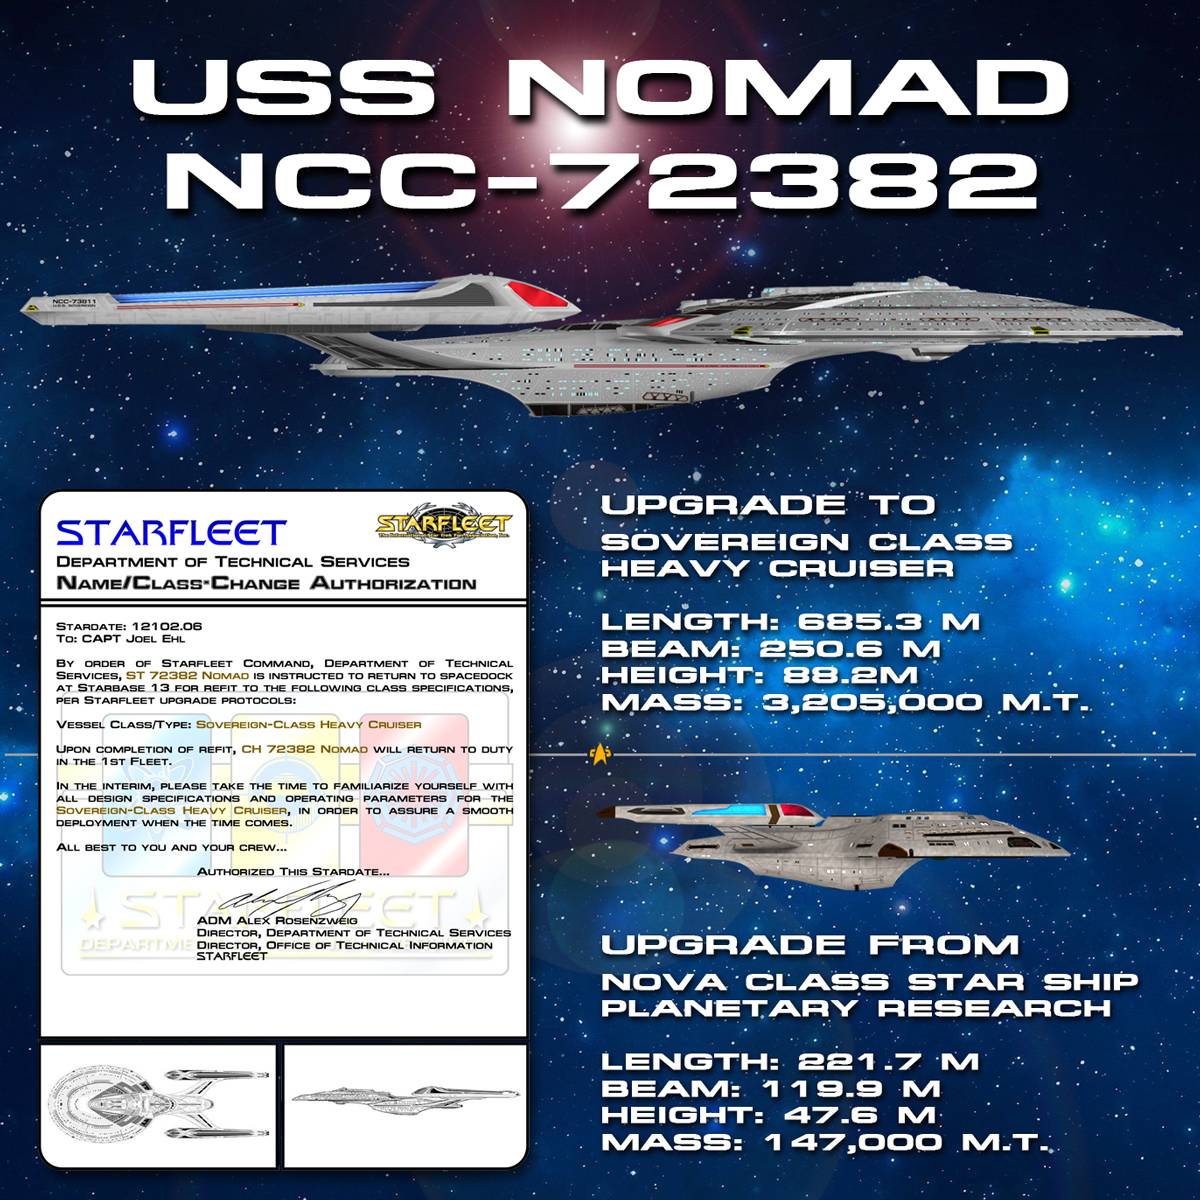 USS Nomad upgrade to Sovereign Class Heavy Cruser